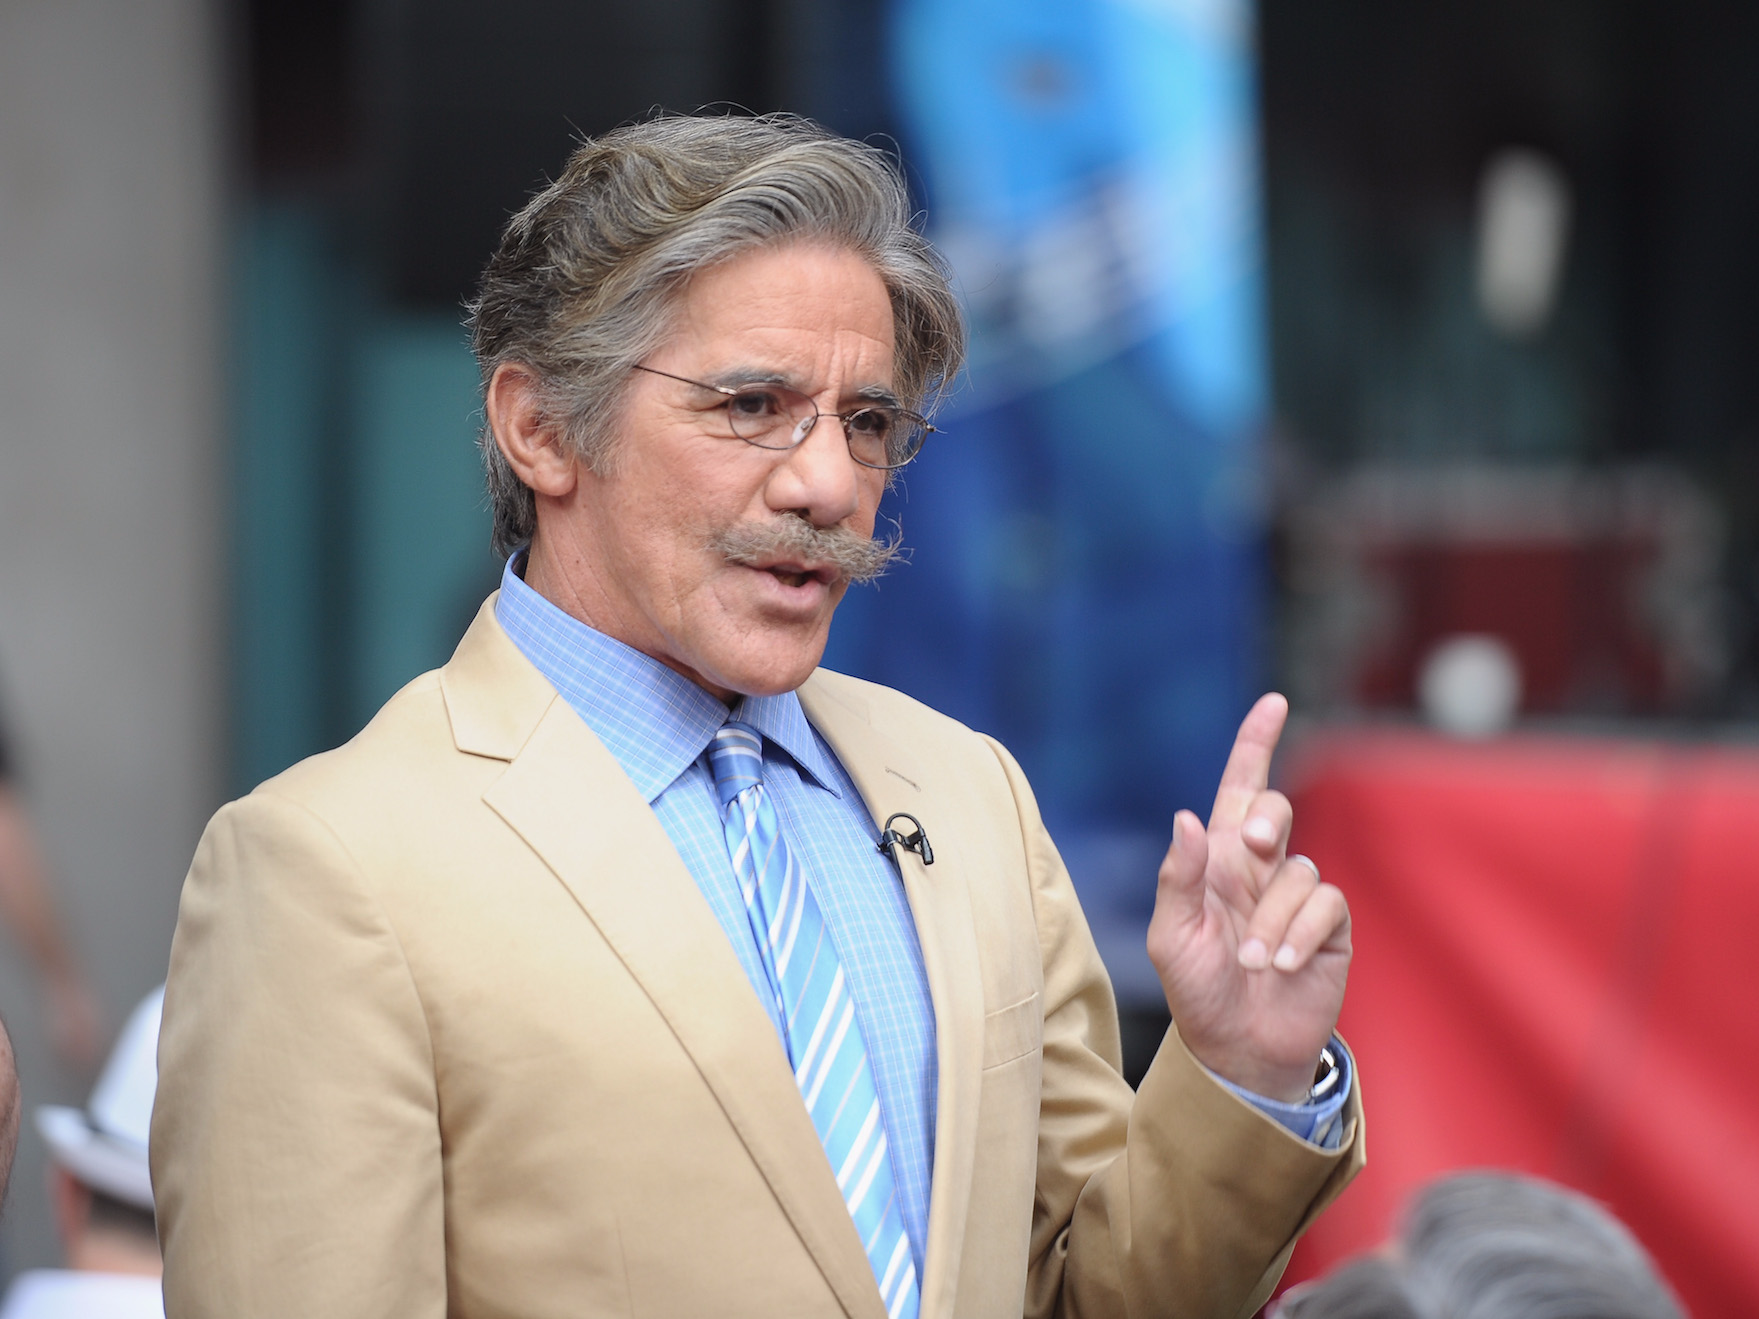 Youre better than that: Geraldo Rivera hits back at Trump for telling progressive freshman congresswomen to go back to broken and crime infested countries